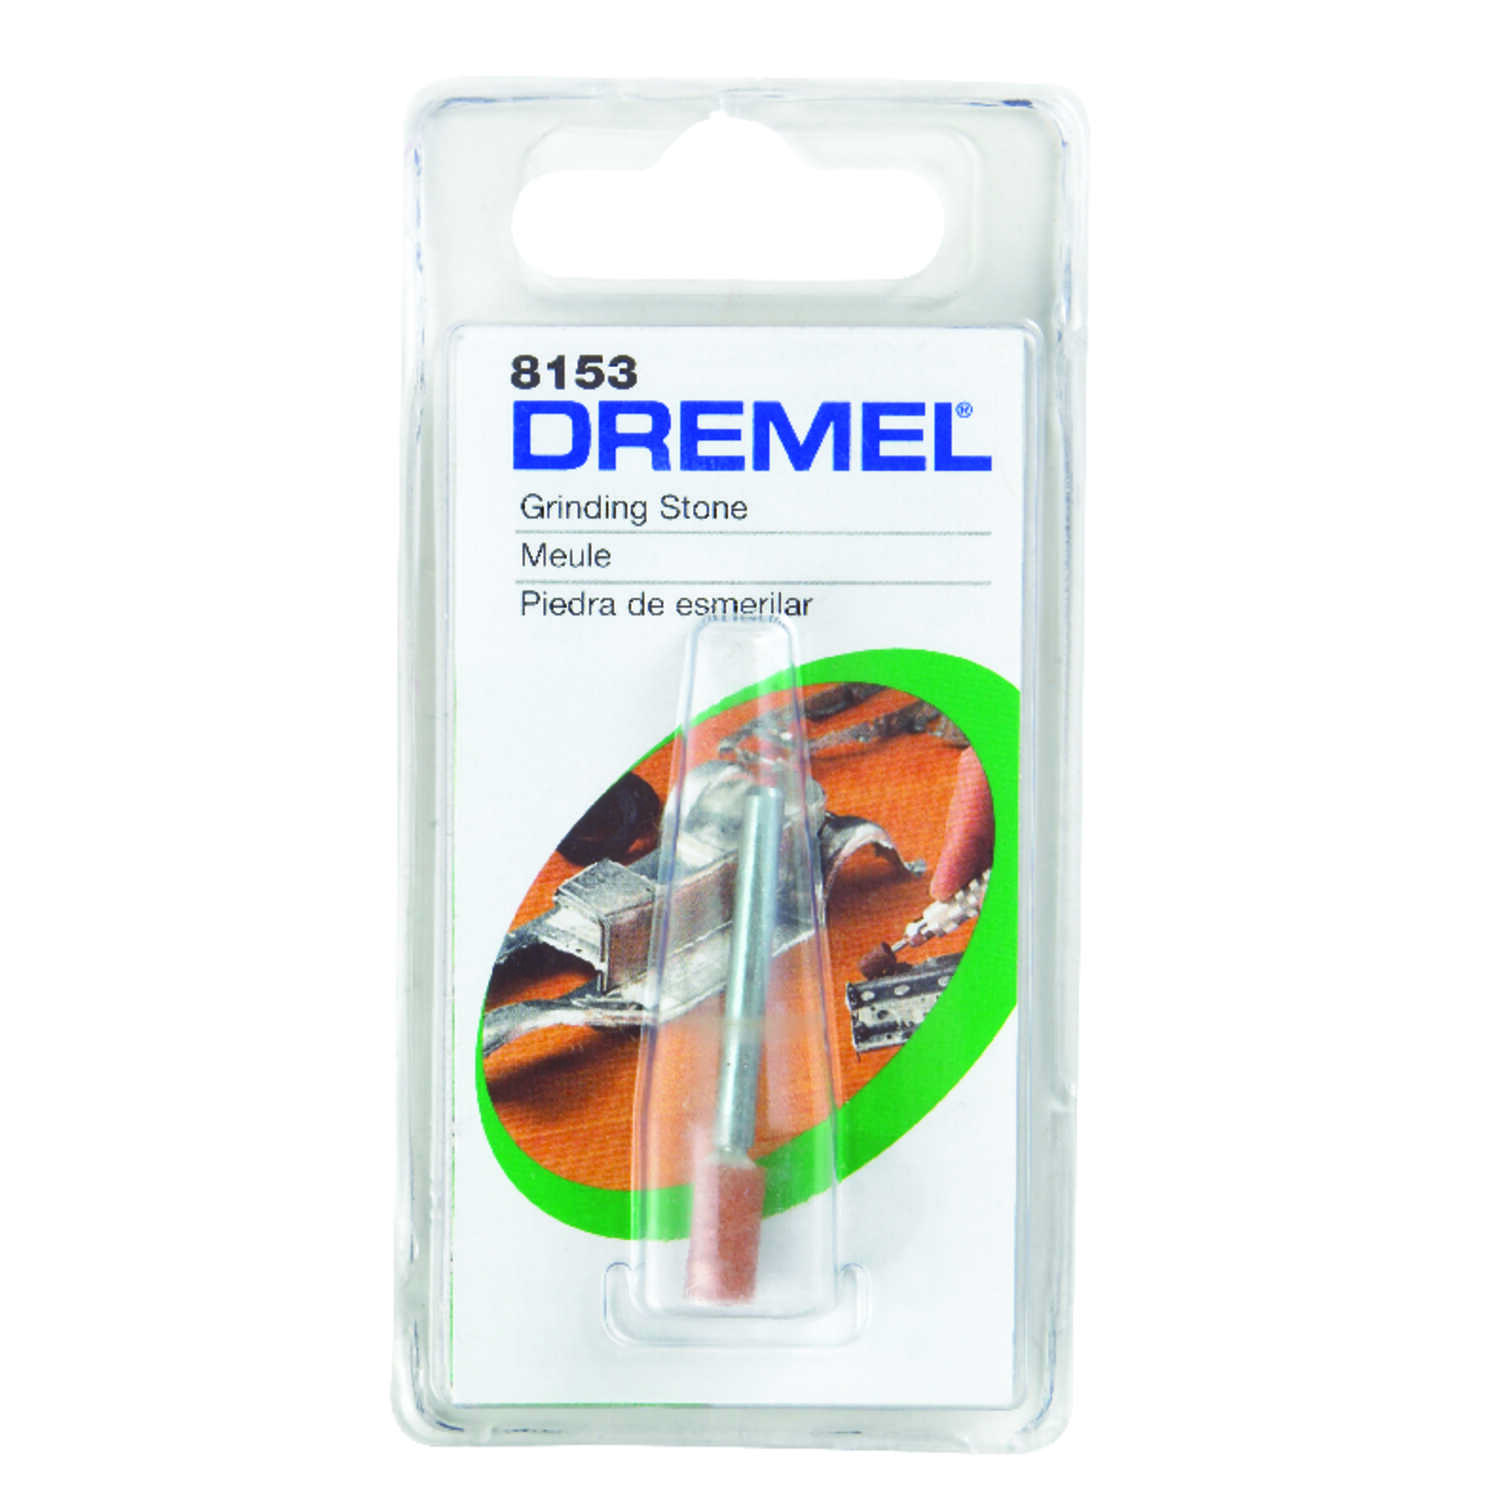 Dremel  3/16 in. L x 1/4 in. Dia. Grinding Stone  Cylinder  35000 rpm 1 pc. Aluminum Oxide